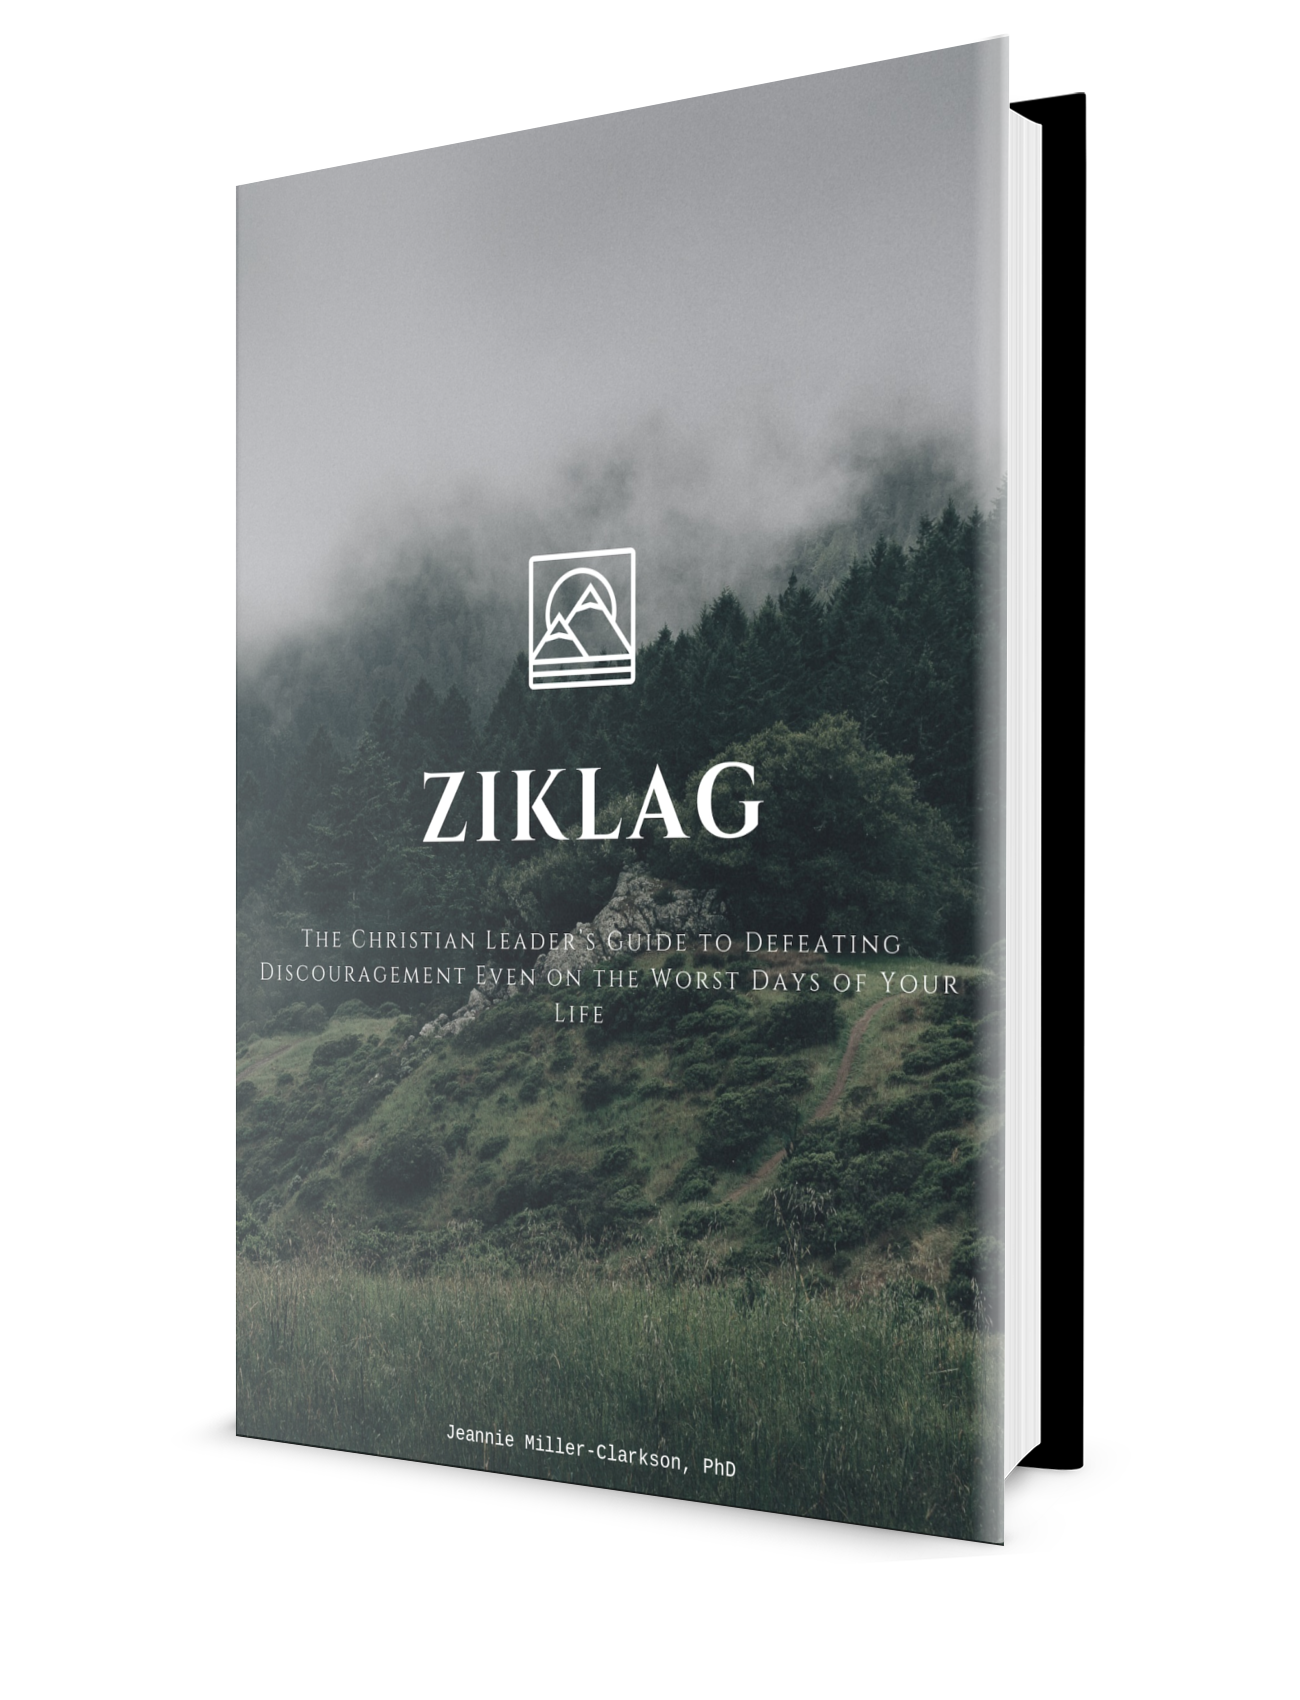 Free download. Ziklag: Overcome Discouragement Even on the Worst Days of Your Life. Bible Study, Self-assessment, Personal Case Study and Small Group Discussion Guide.